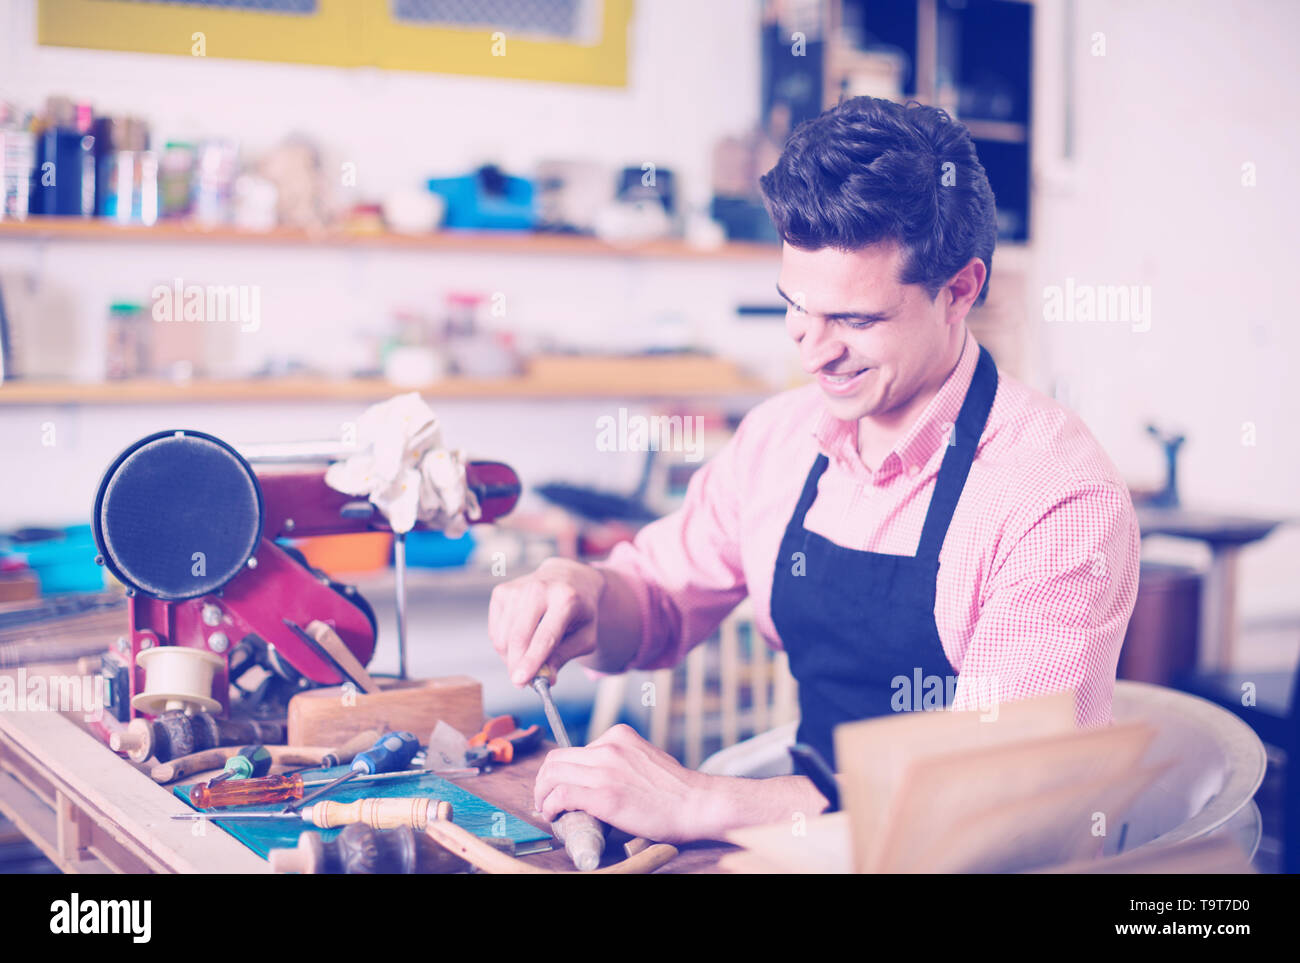 Skilled concentrated joiner working in workshop with chisel in hands - Stock Image